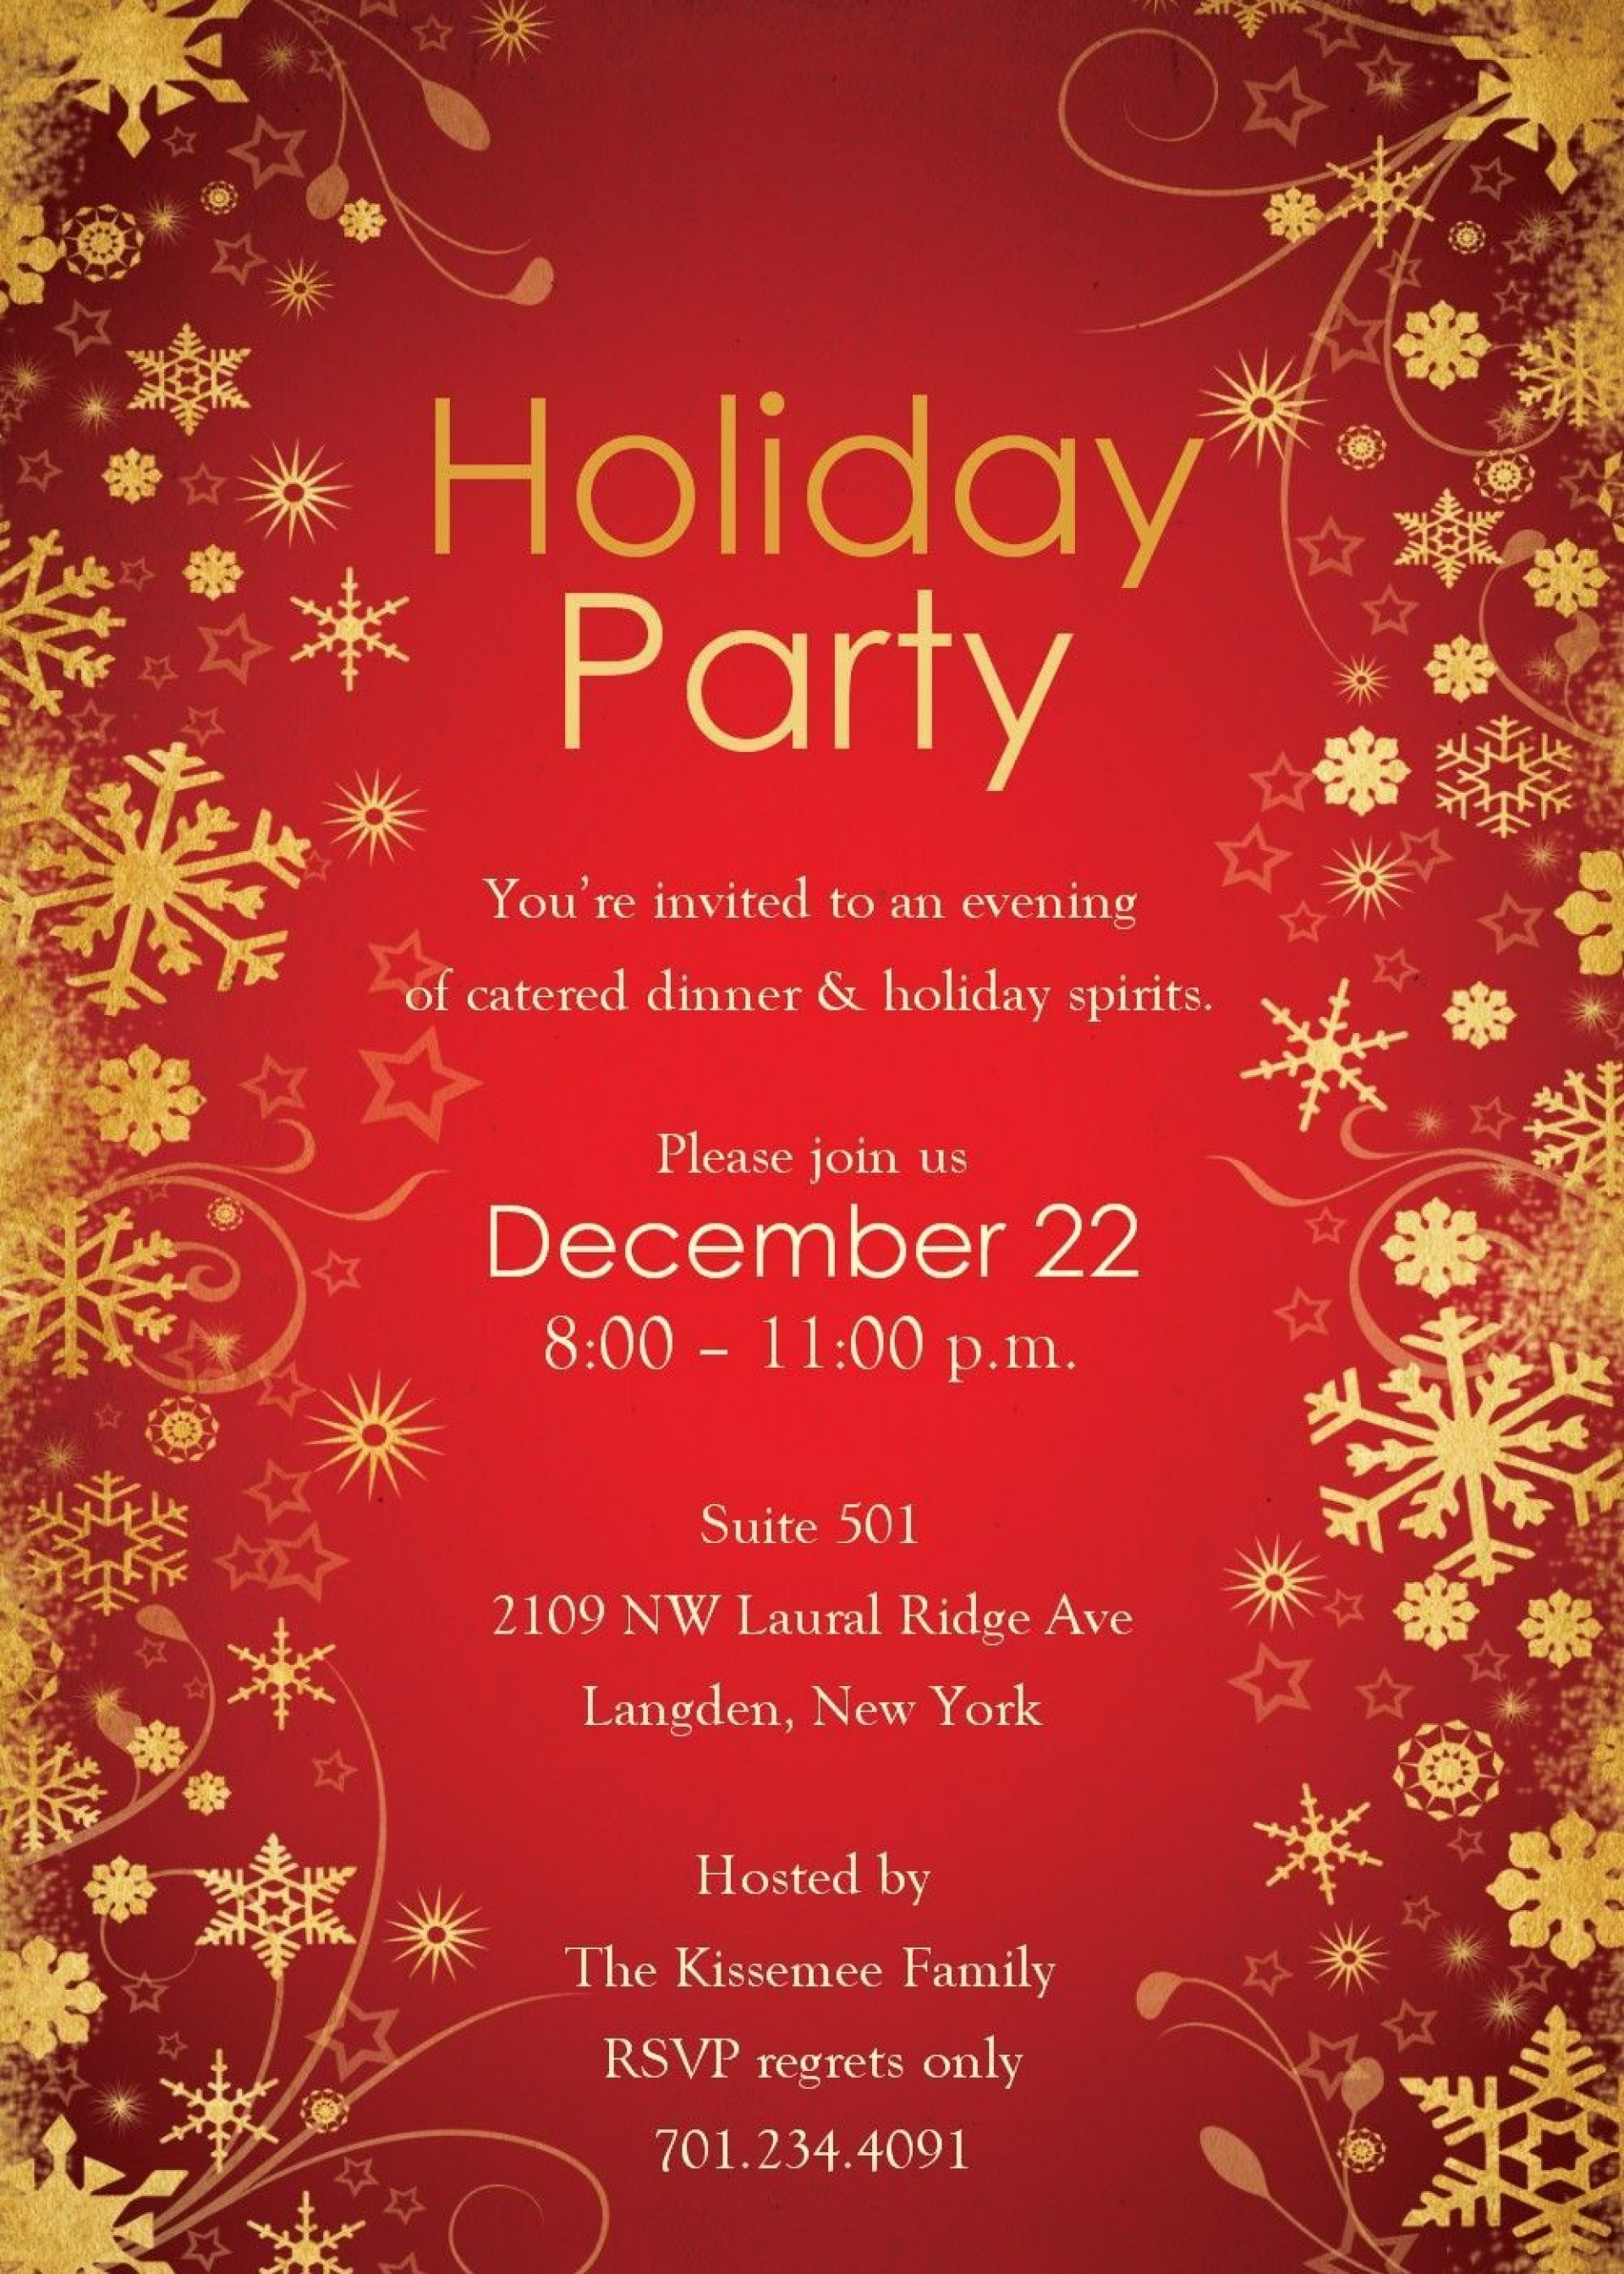 004 Fascinating Holiday Party Flyer Template Free High Resolution  Office1920